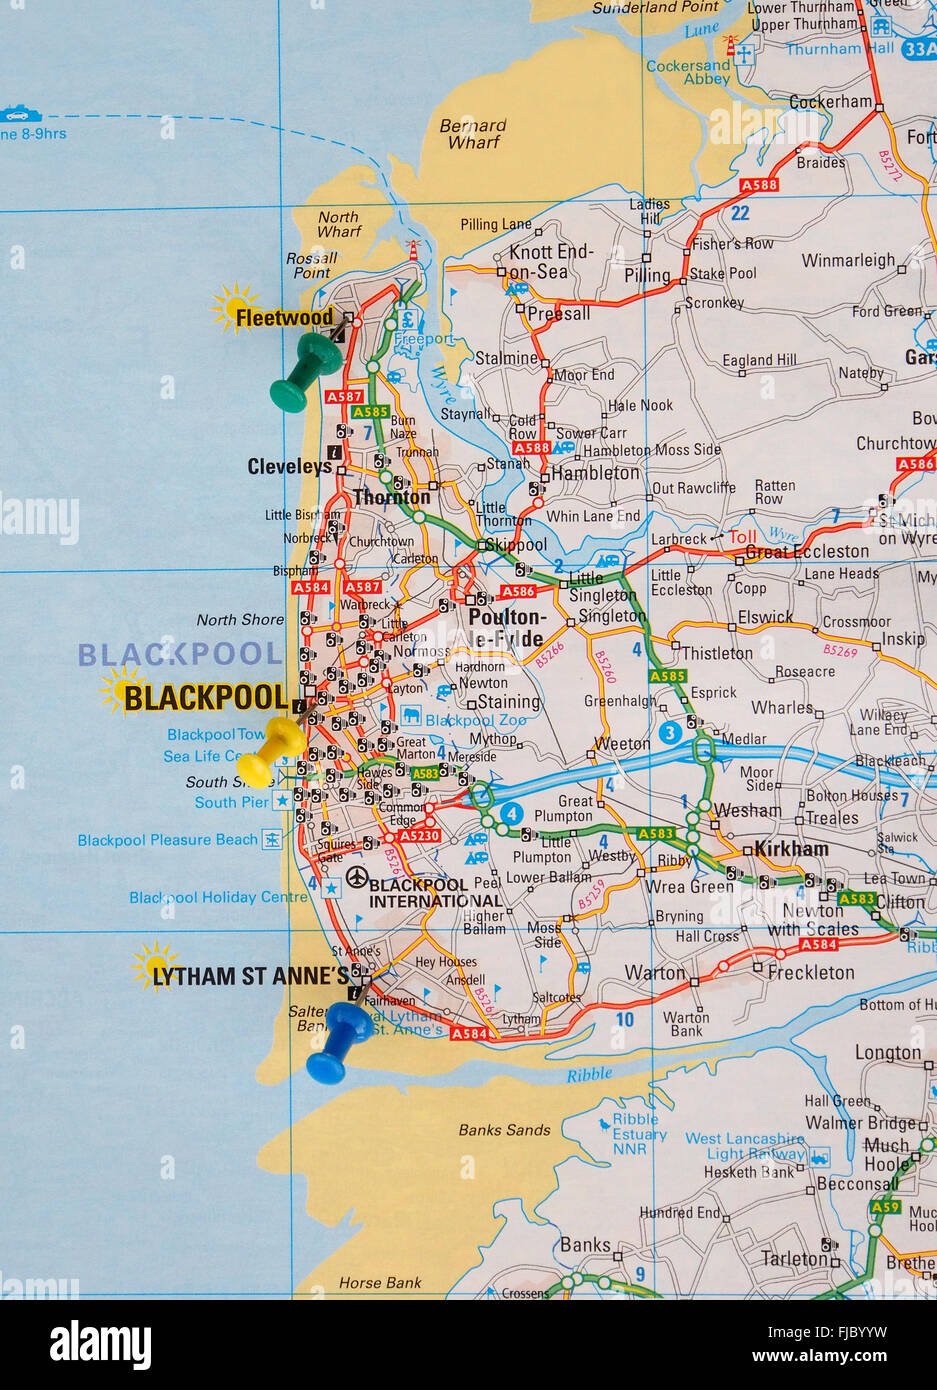 Road Map Of The North Coast Of England With Map Pins Showing The - Blackpool map